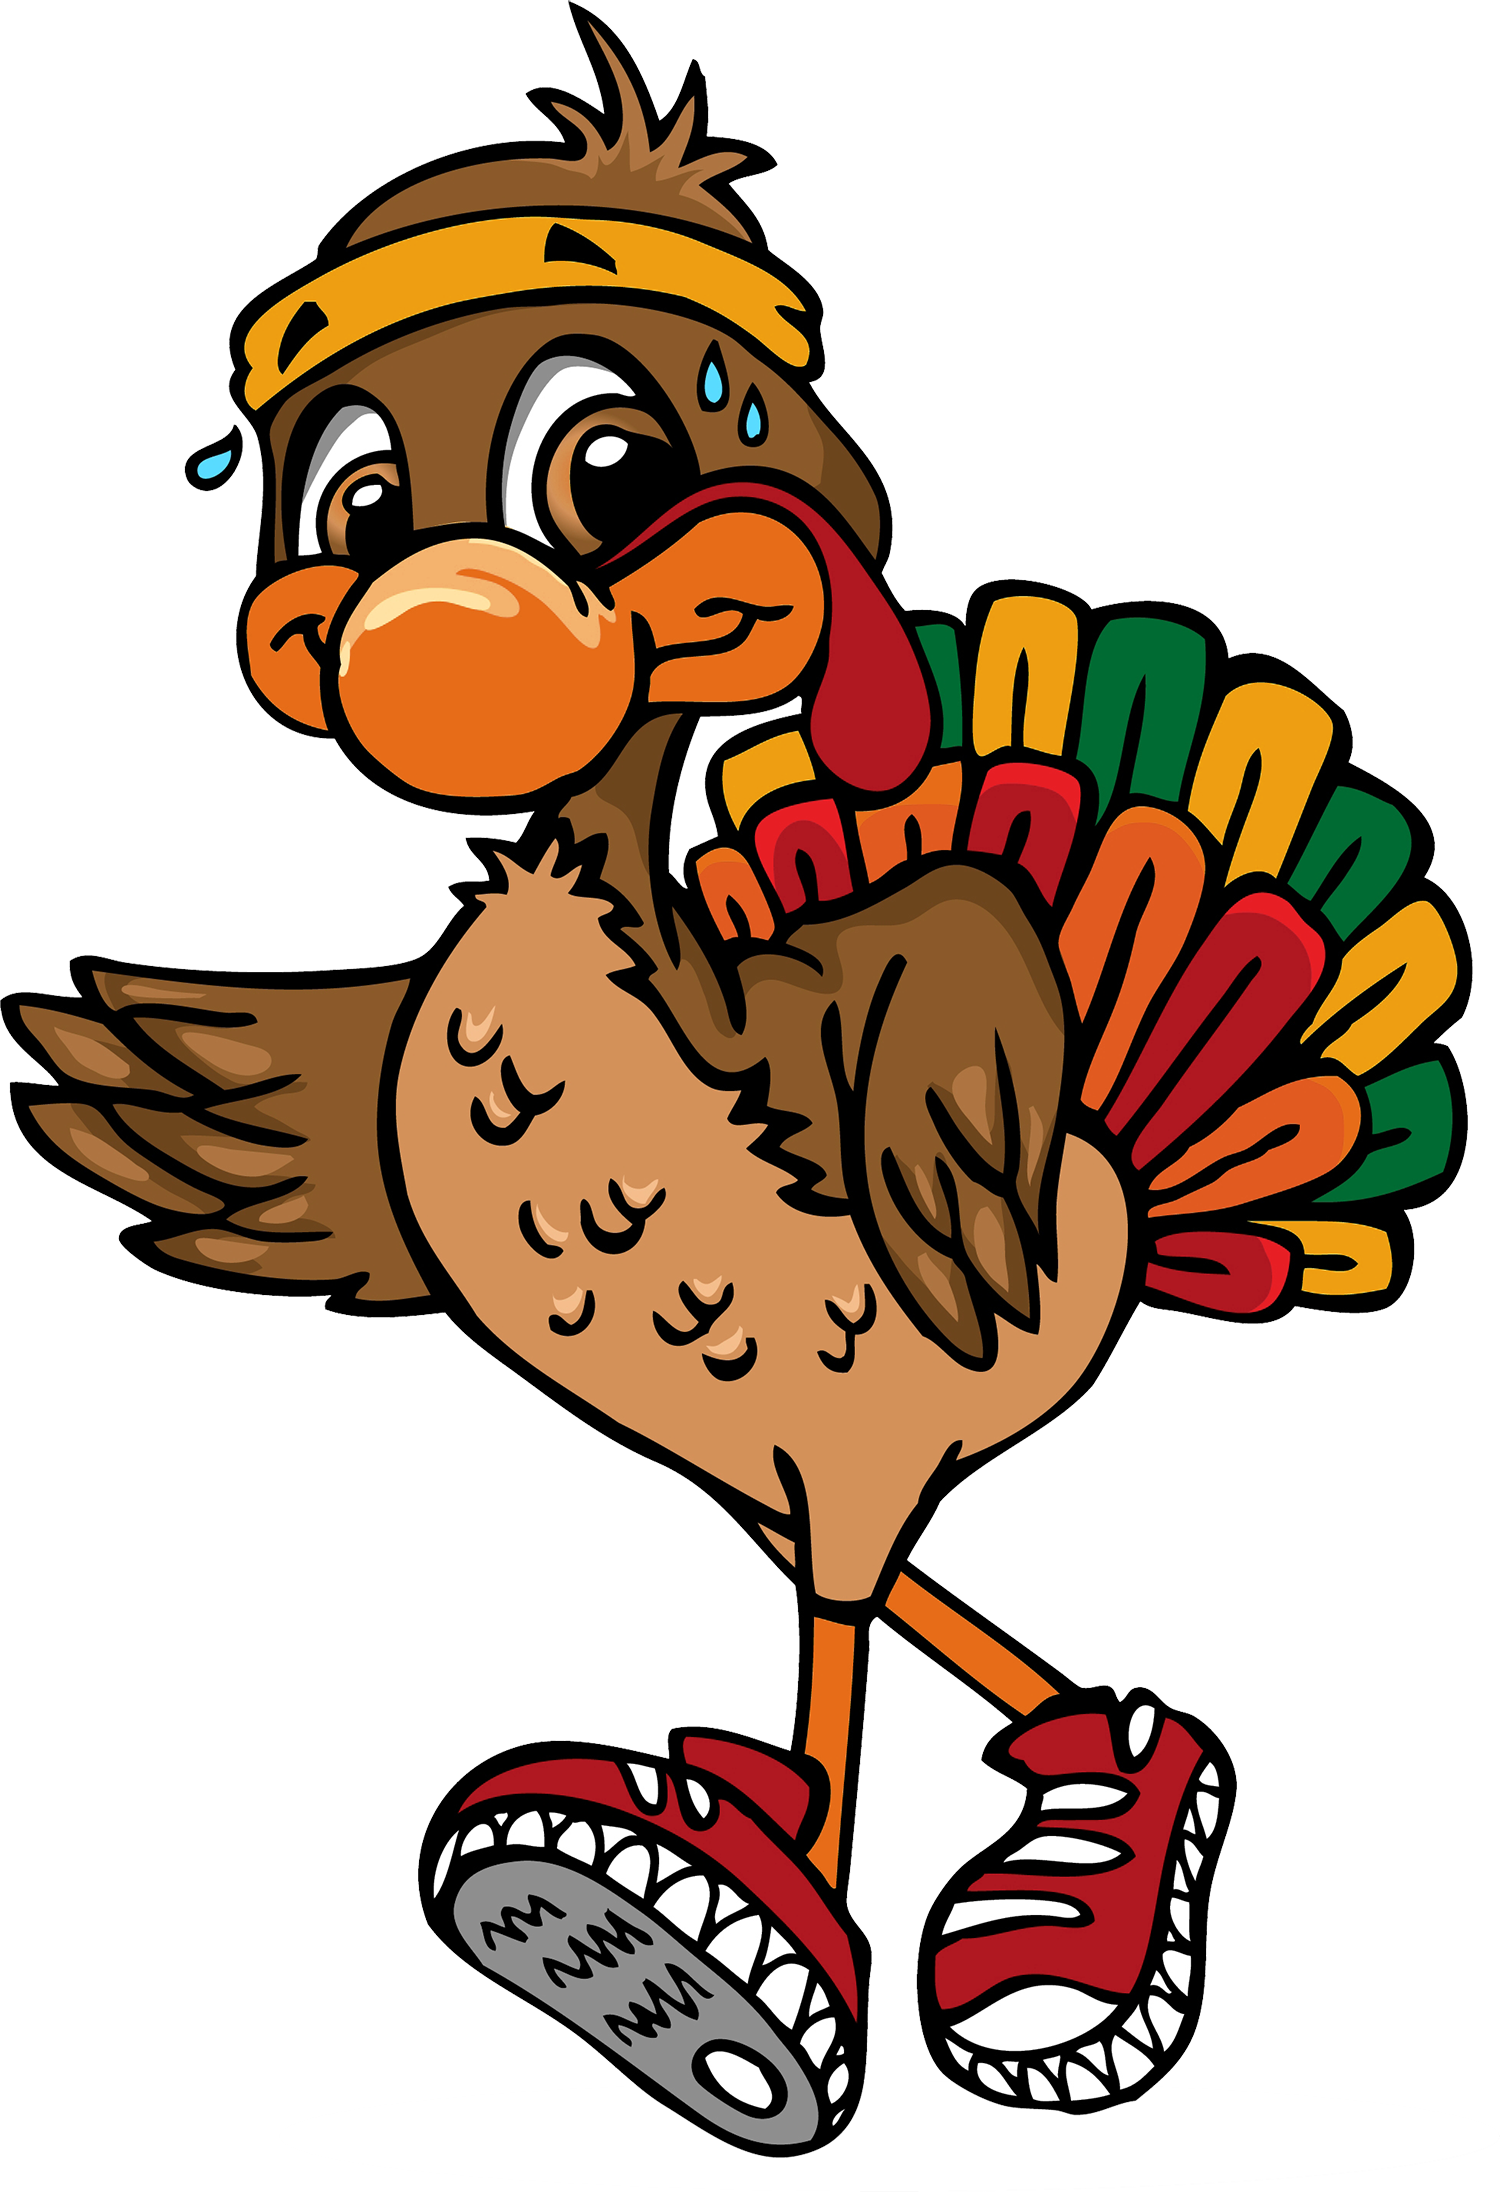 Turkey trop clipart vector free library Federation of Organizations Turkey Trot 5K Run - elitefeats vector free library